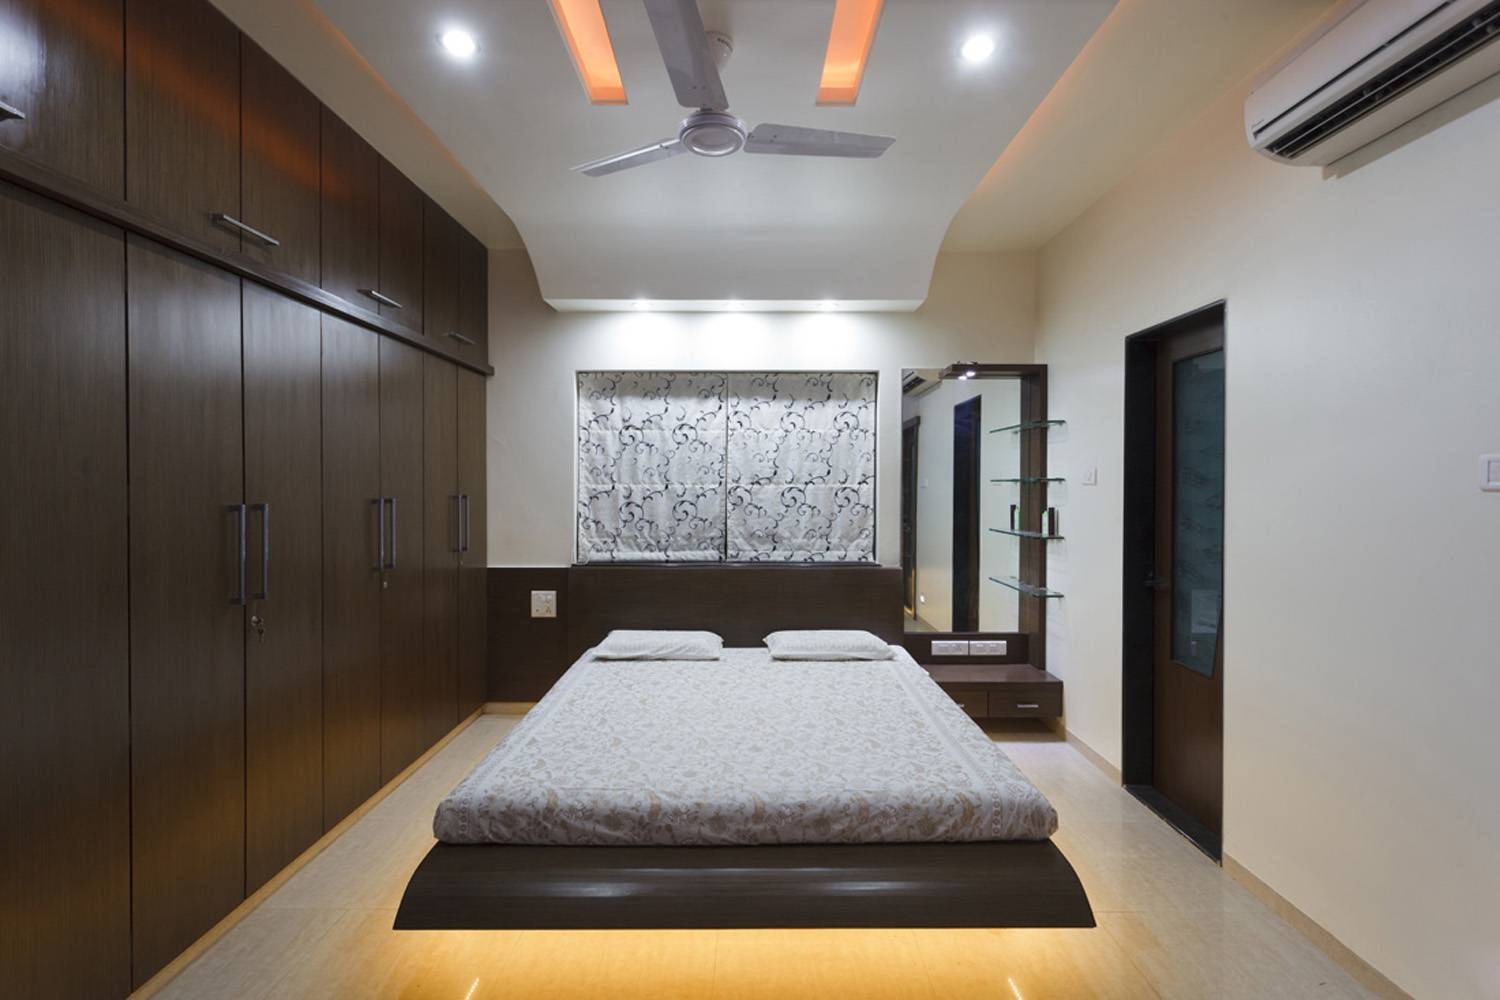 Bed room interior design portfolio leading interior for Be interior design